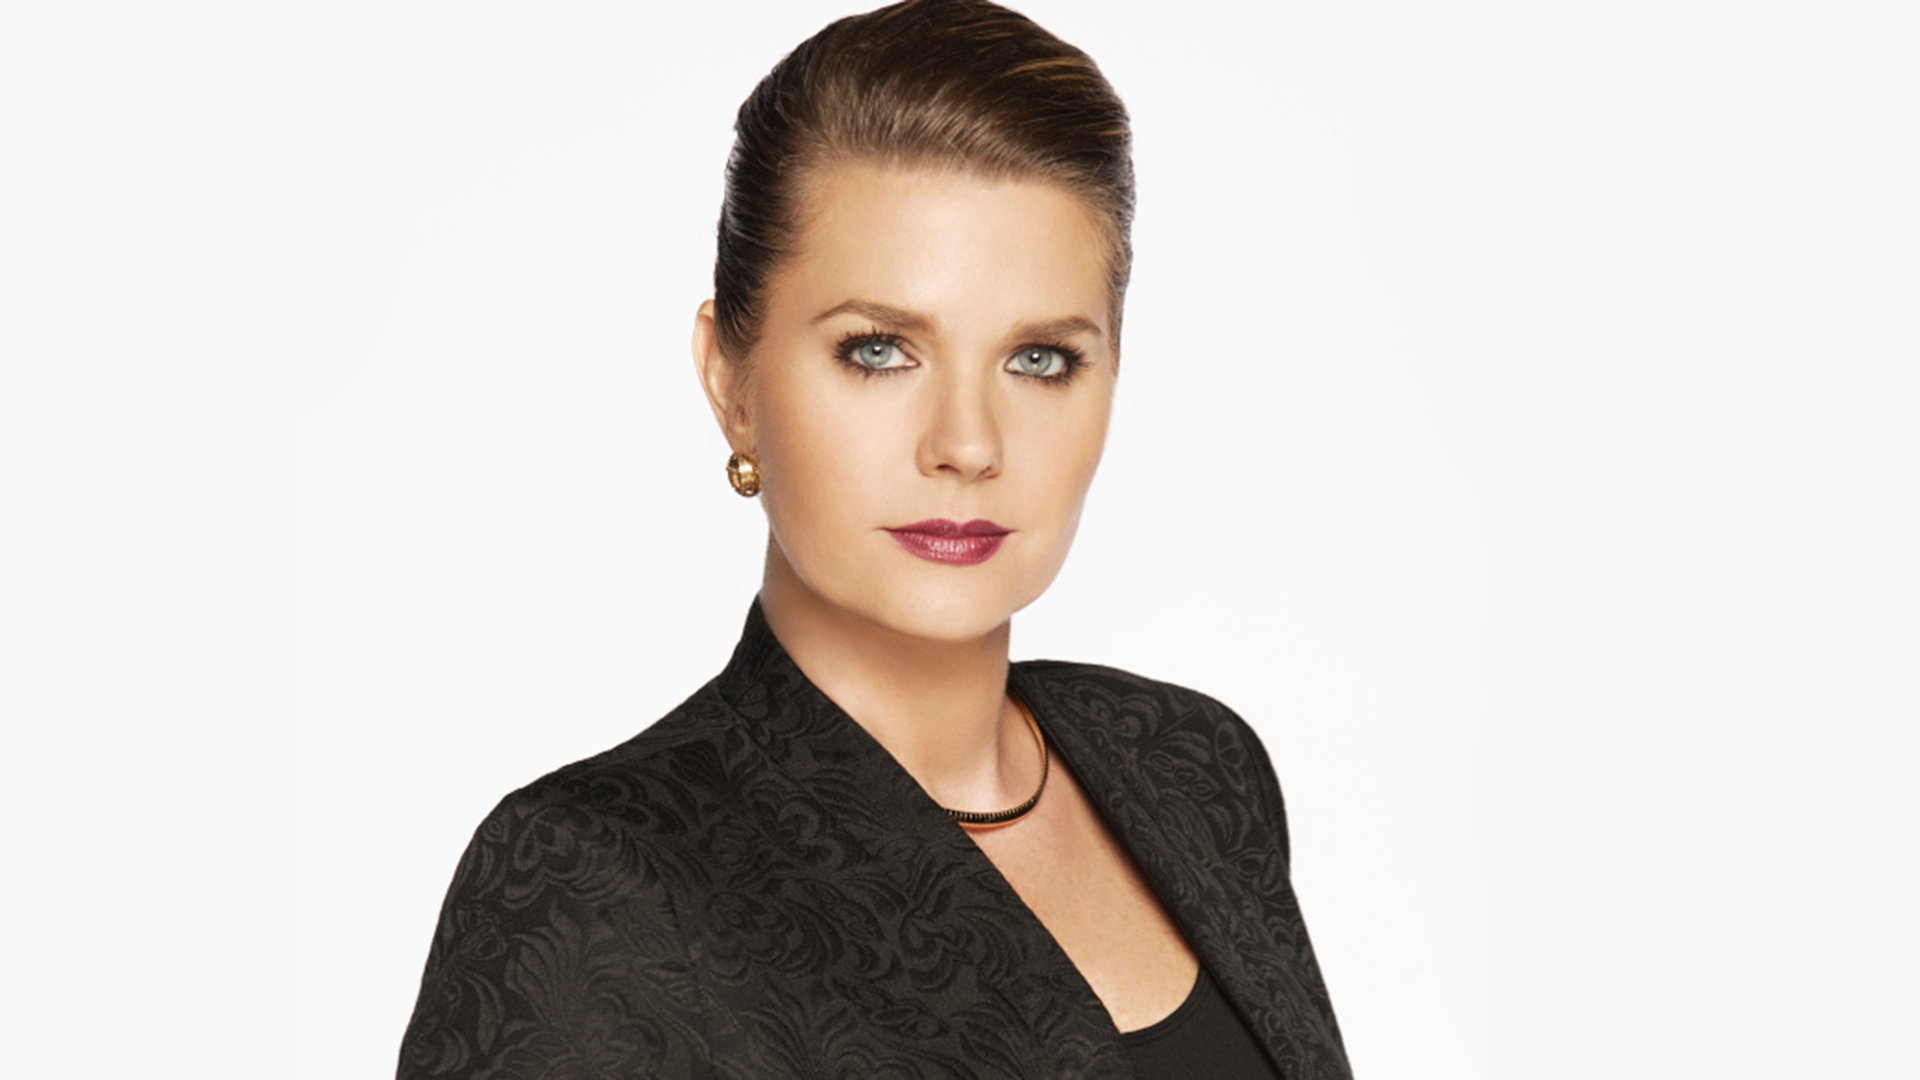 sonya smith pareja actual